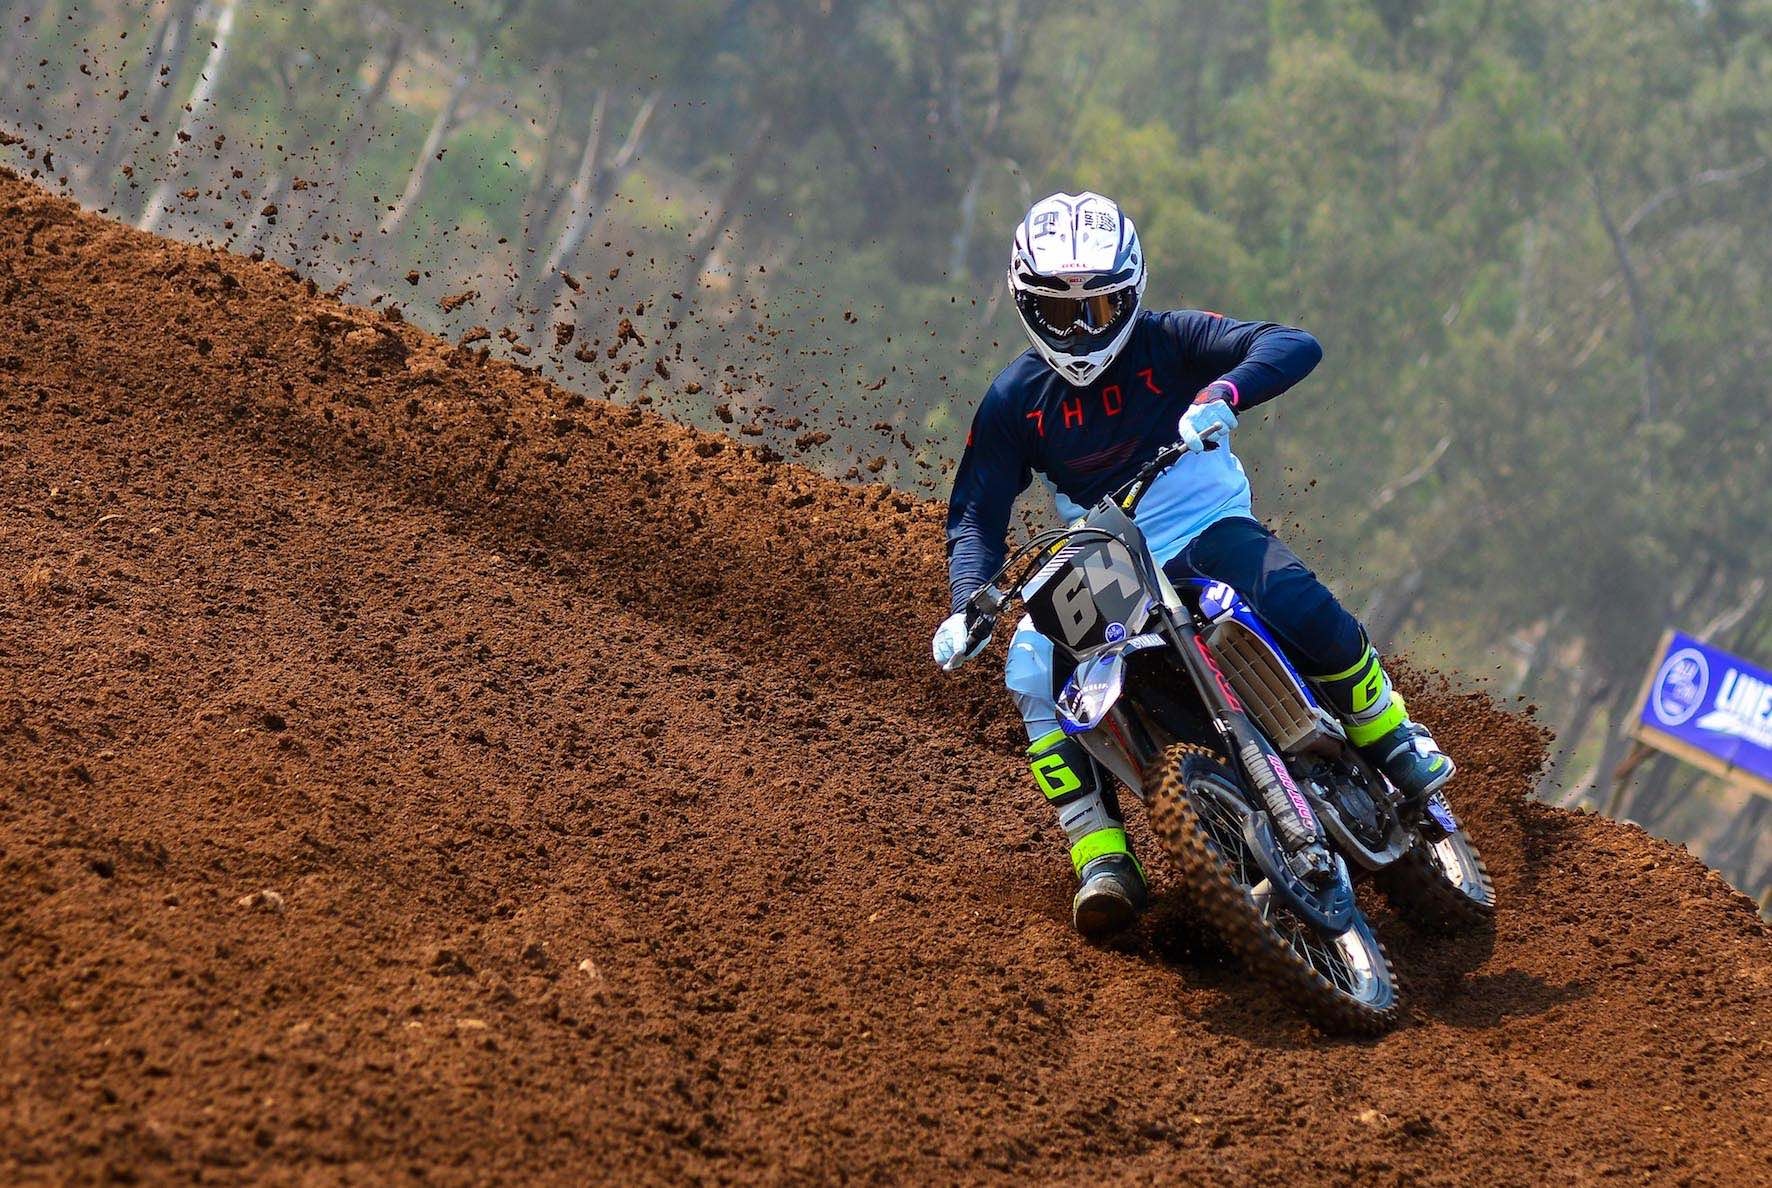 We review the all new 2019 Thor MX Prime Pro motocross racewear